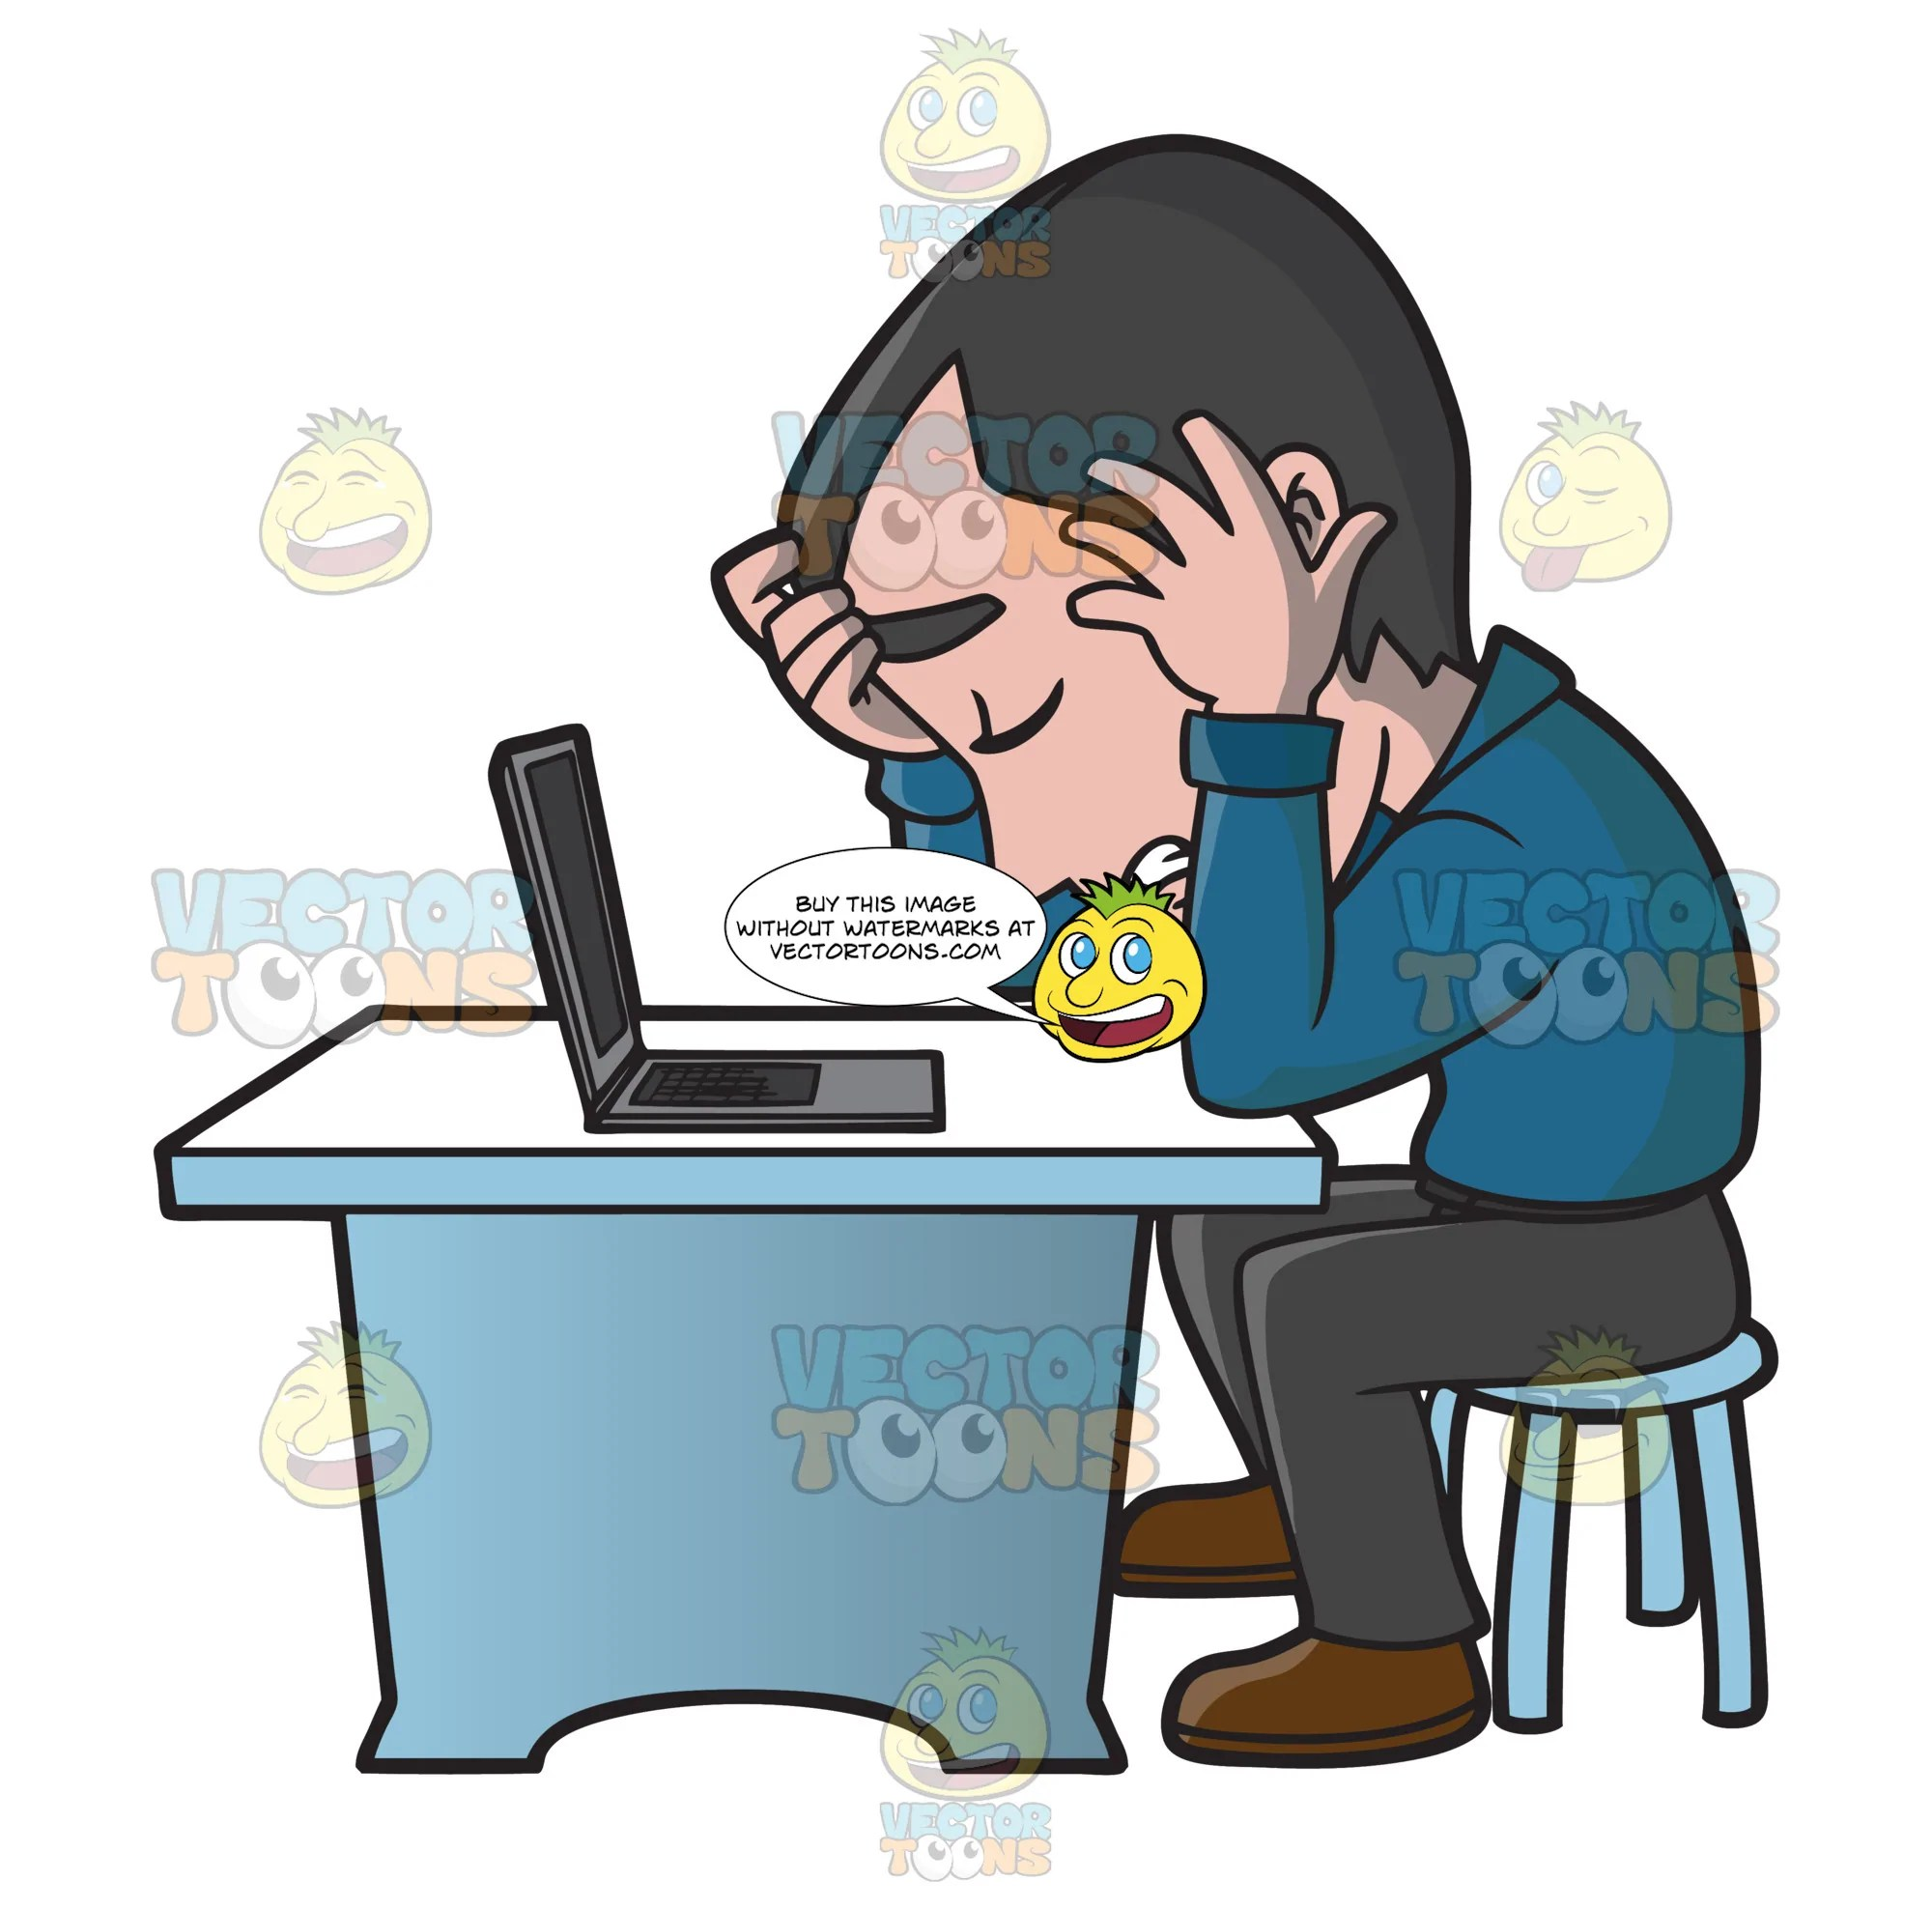 medium resolution of a frustrated man working on his computer clipart cartoons by vectortoons